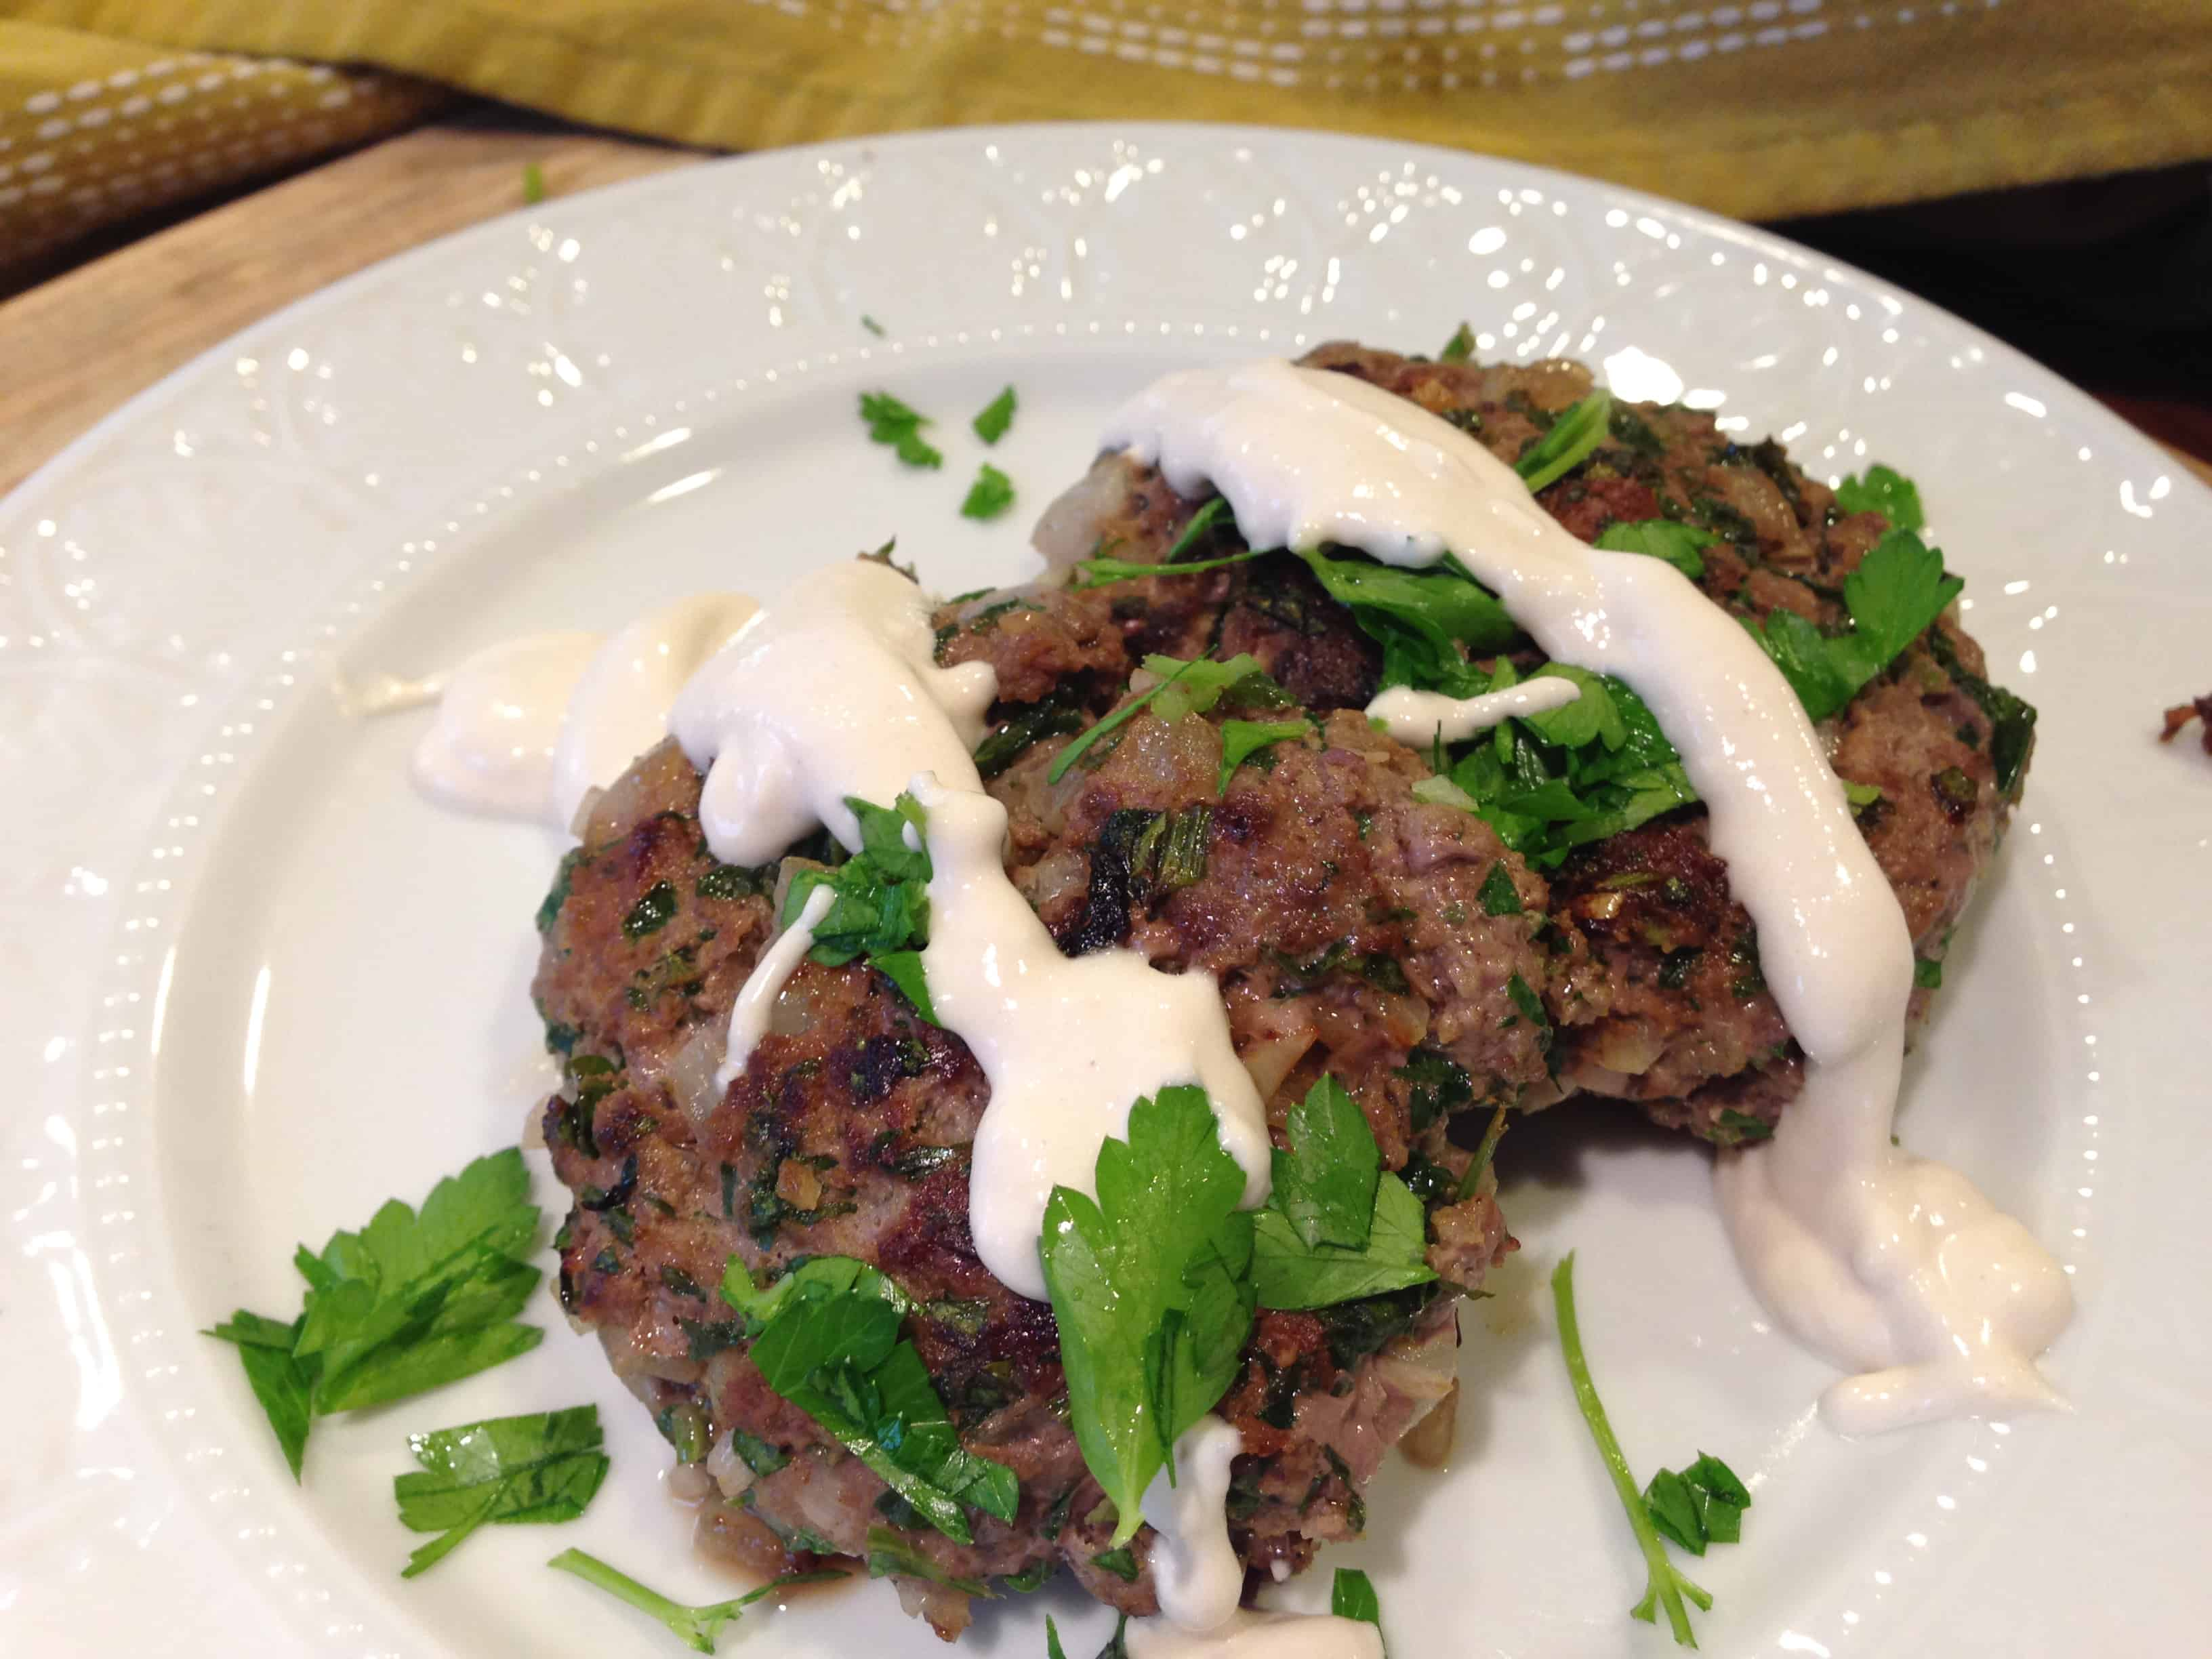 Bison Patties with cumin | Paleo Diet - Tri Holistic Nutrition